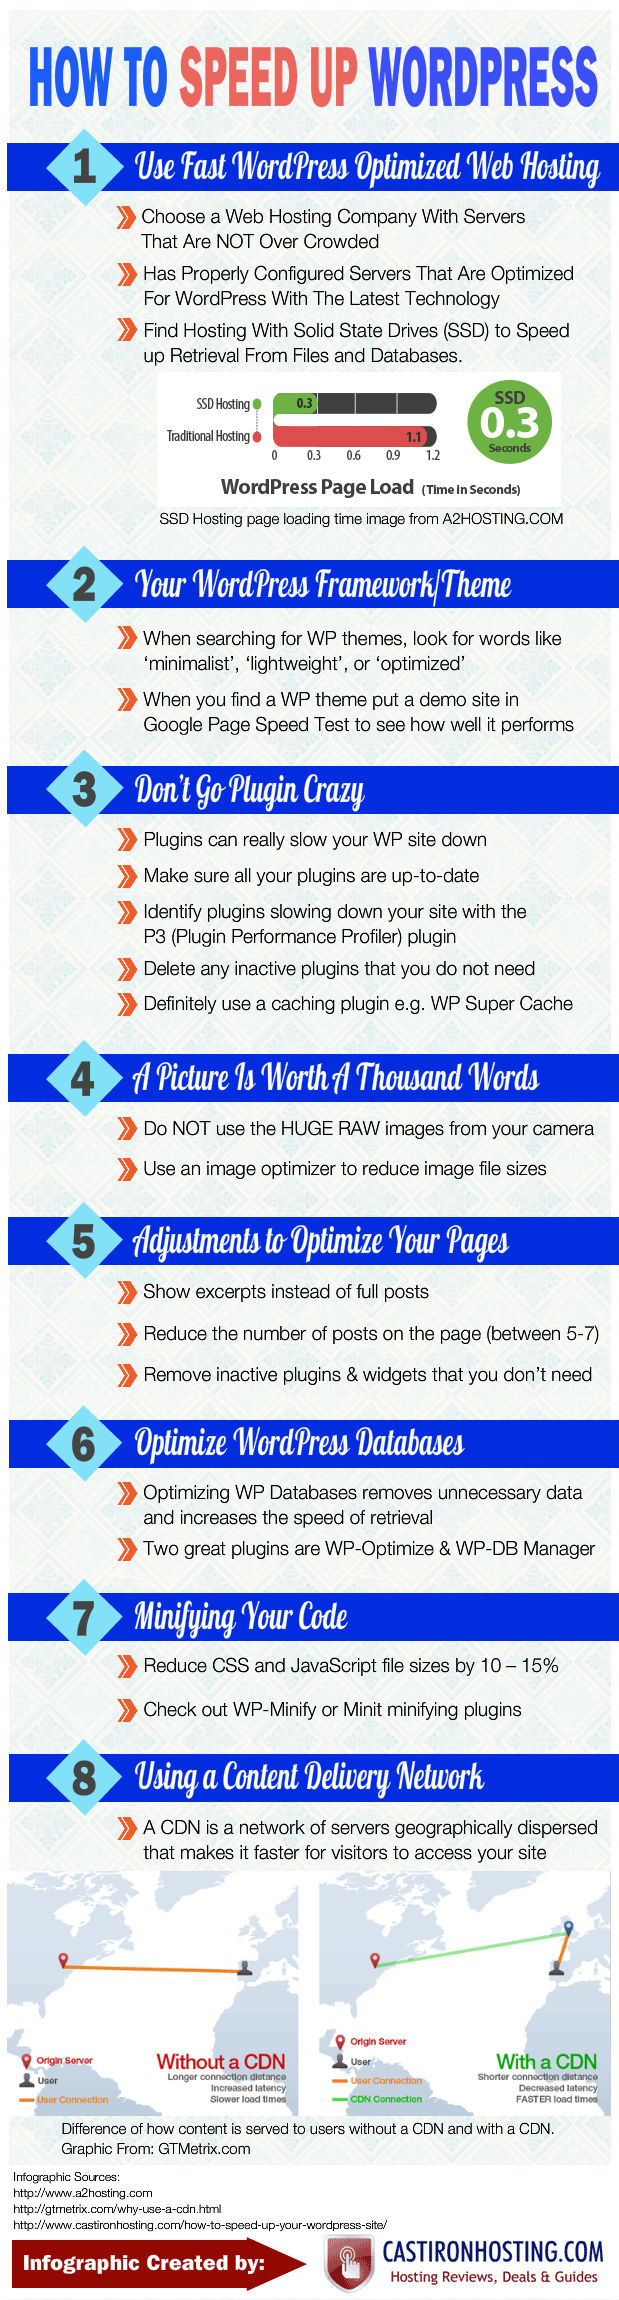 How to Speed up WordPress Infographic